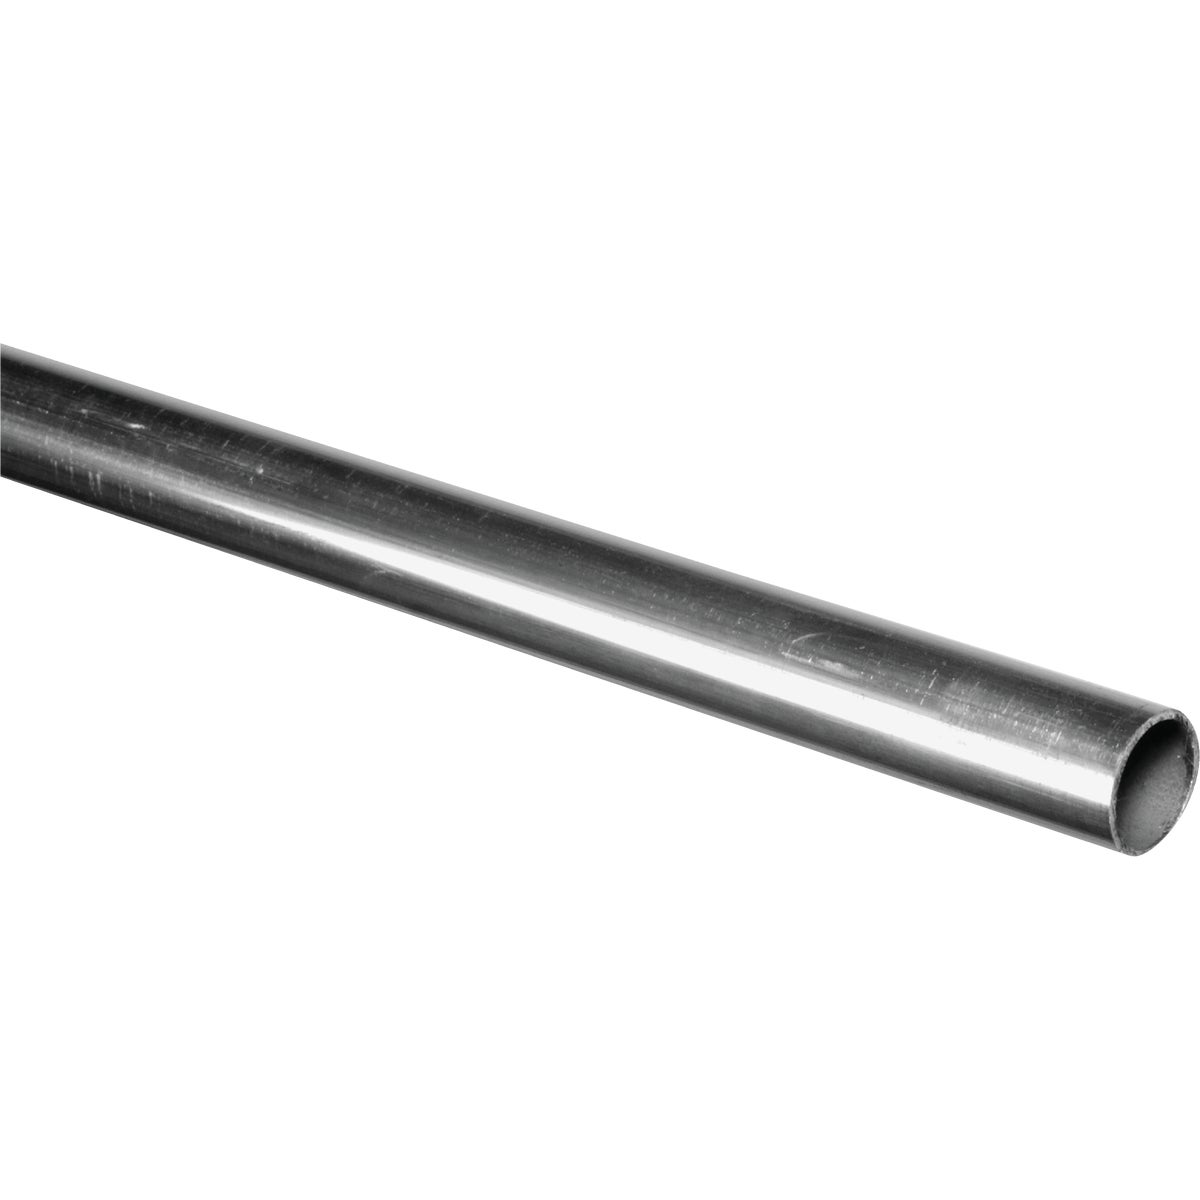 1-1/4X1/16X96 MILL TUBE - N263376 by National Mfg Co